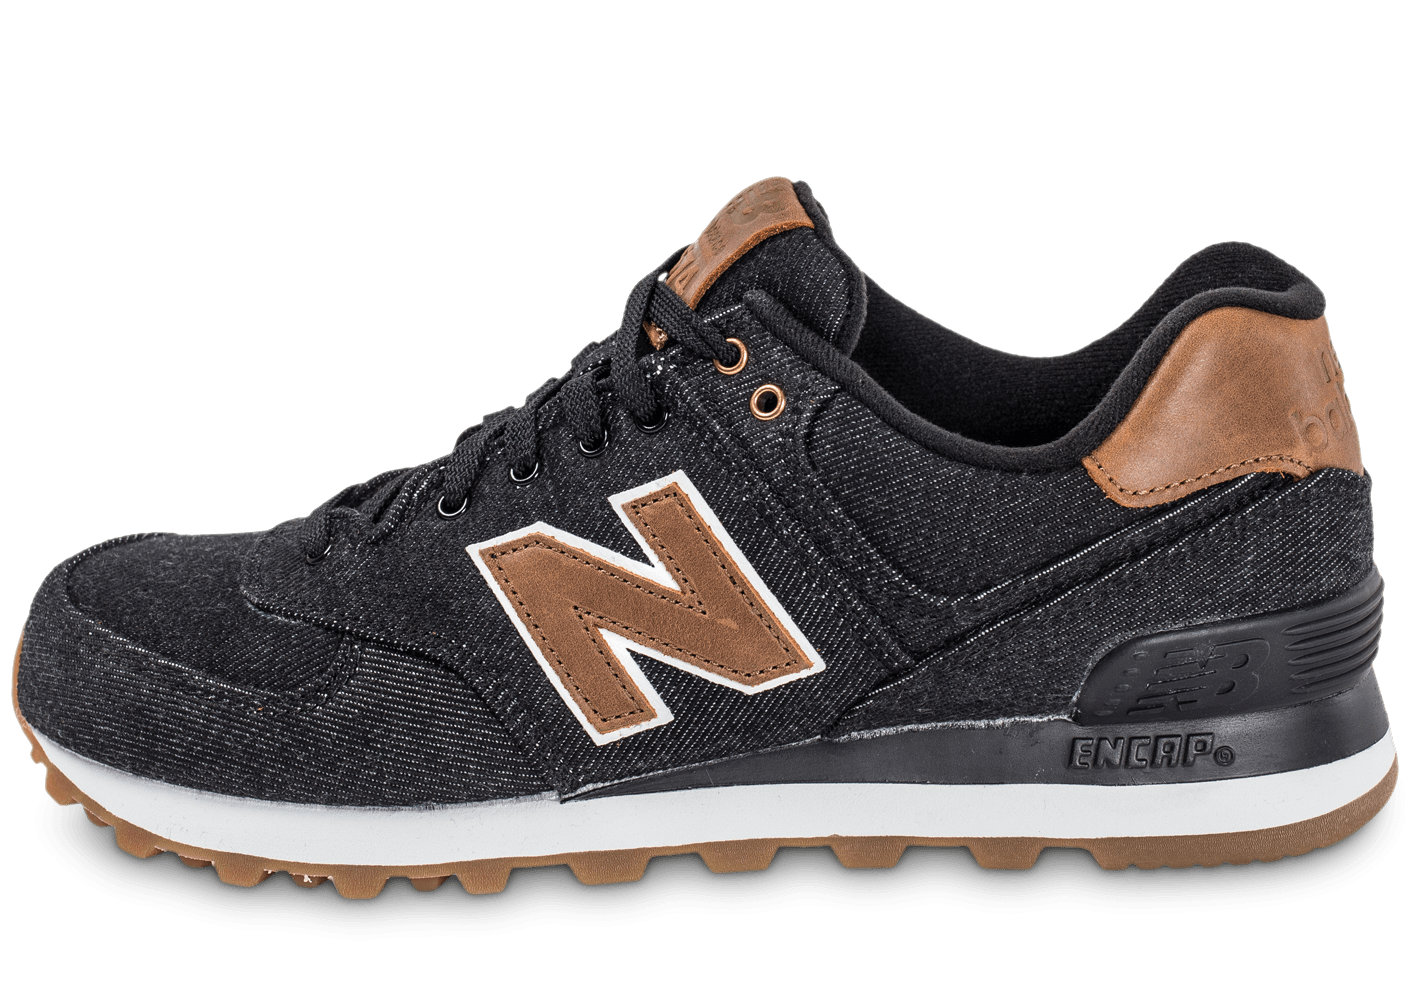 new balance ml574txa denim noire et marron chaussures homme chausport. Black Bedroom Furniture Sets. Home Design Ideas